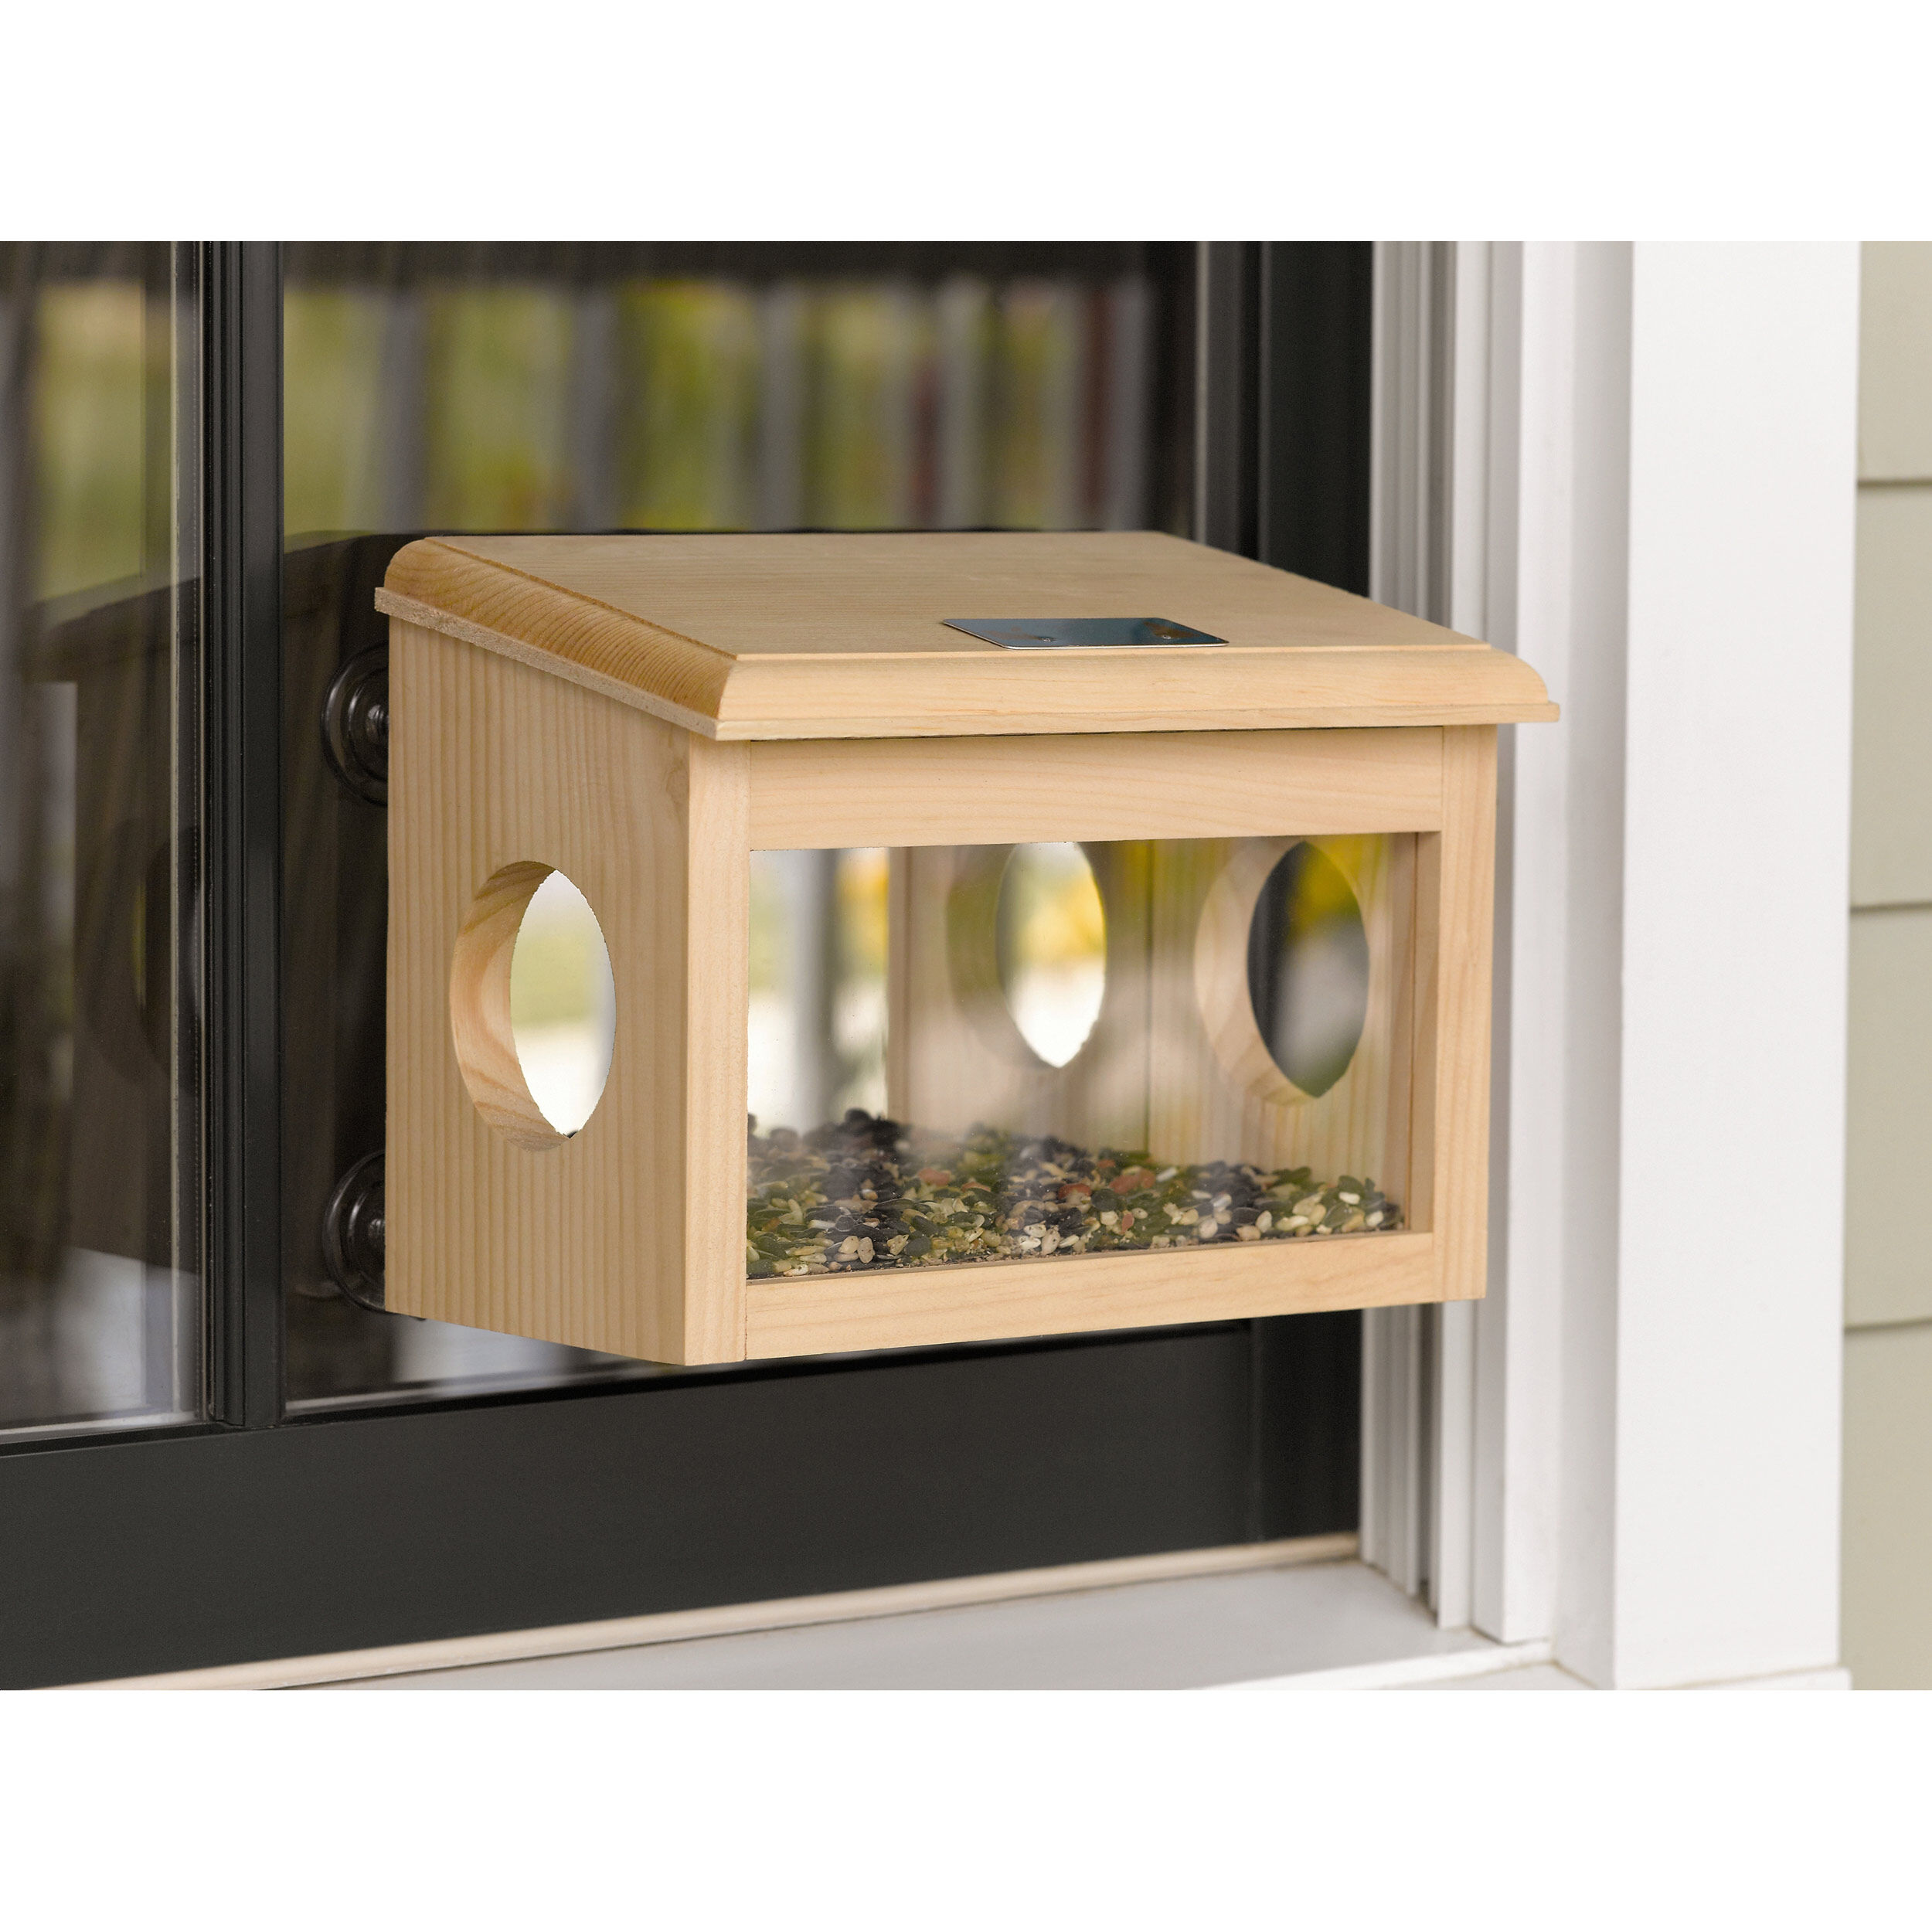 buy mirrored window bird feeder l